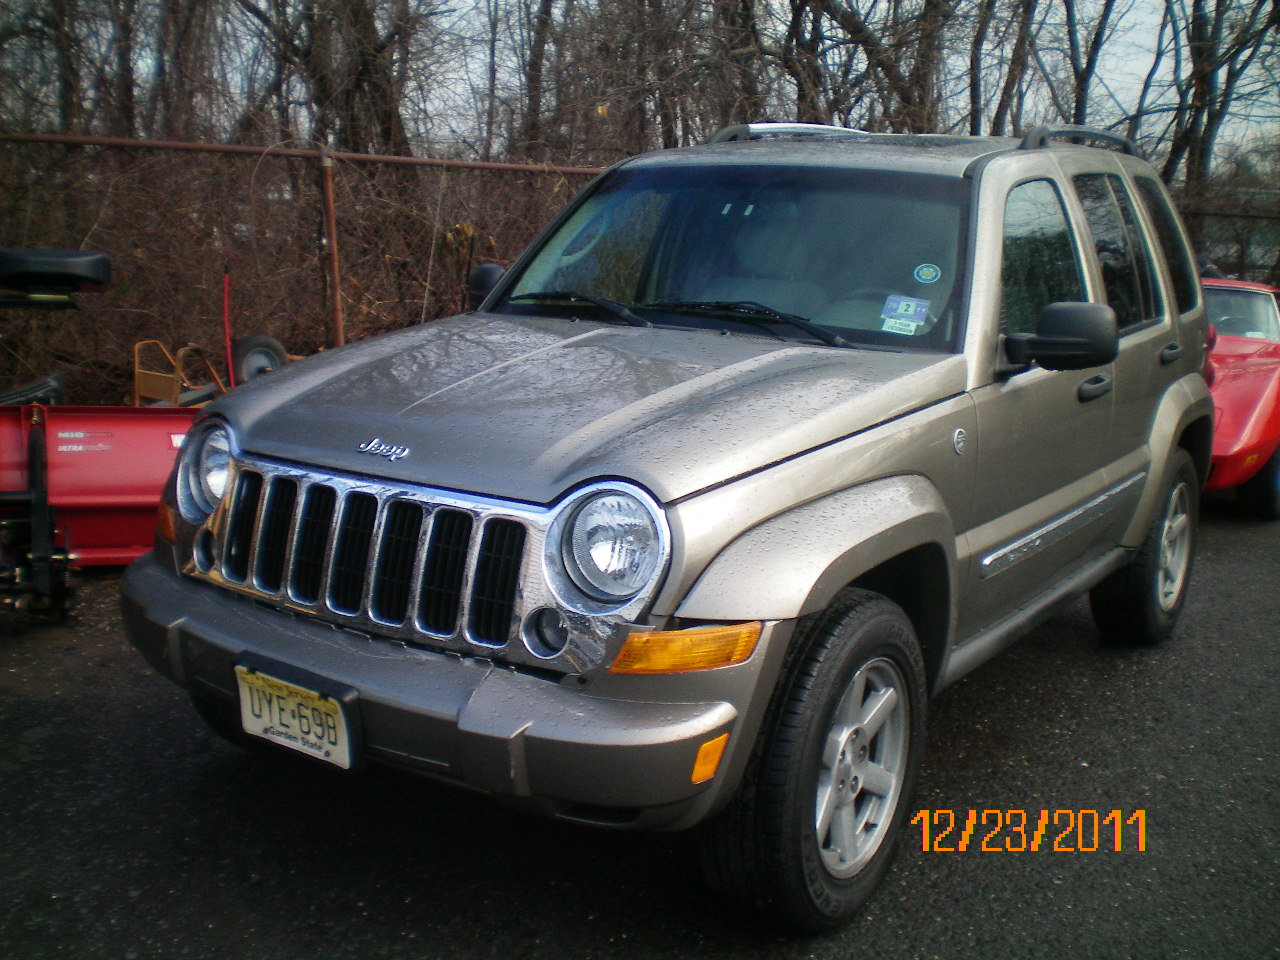 2005 jeep liberty - before/after photos - auto body repair